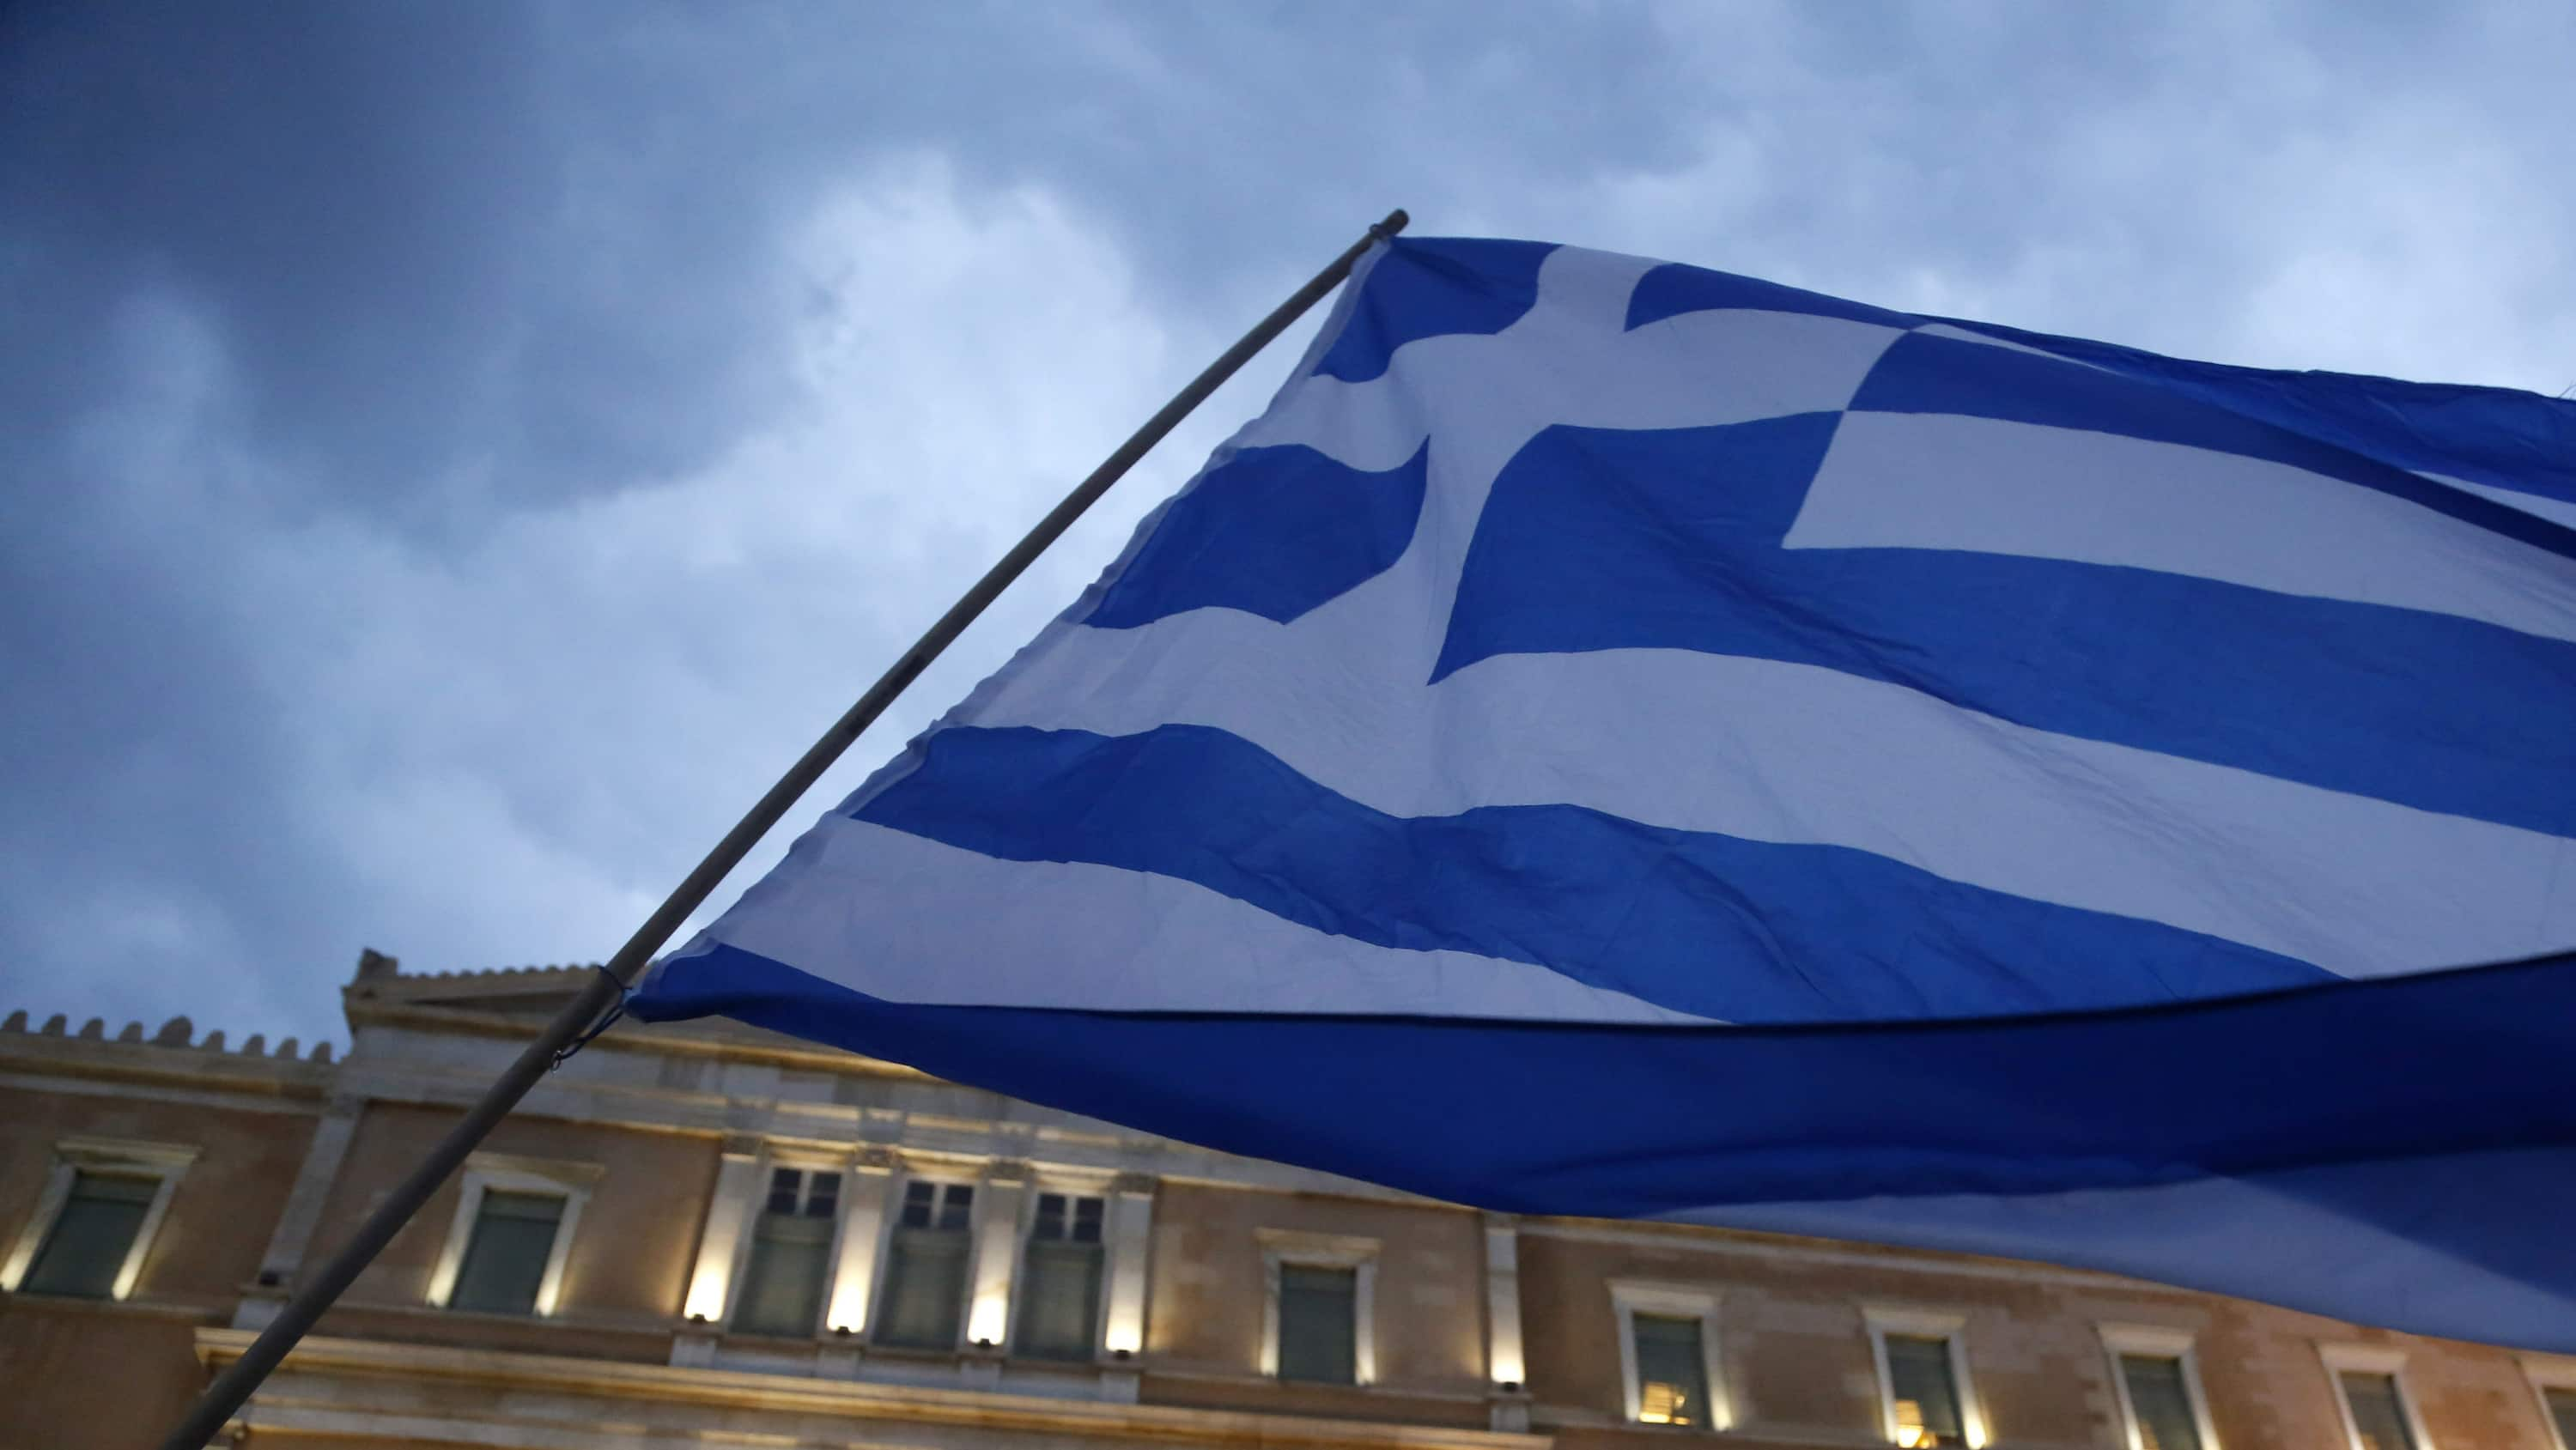 The National - Greece misses loan payment